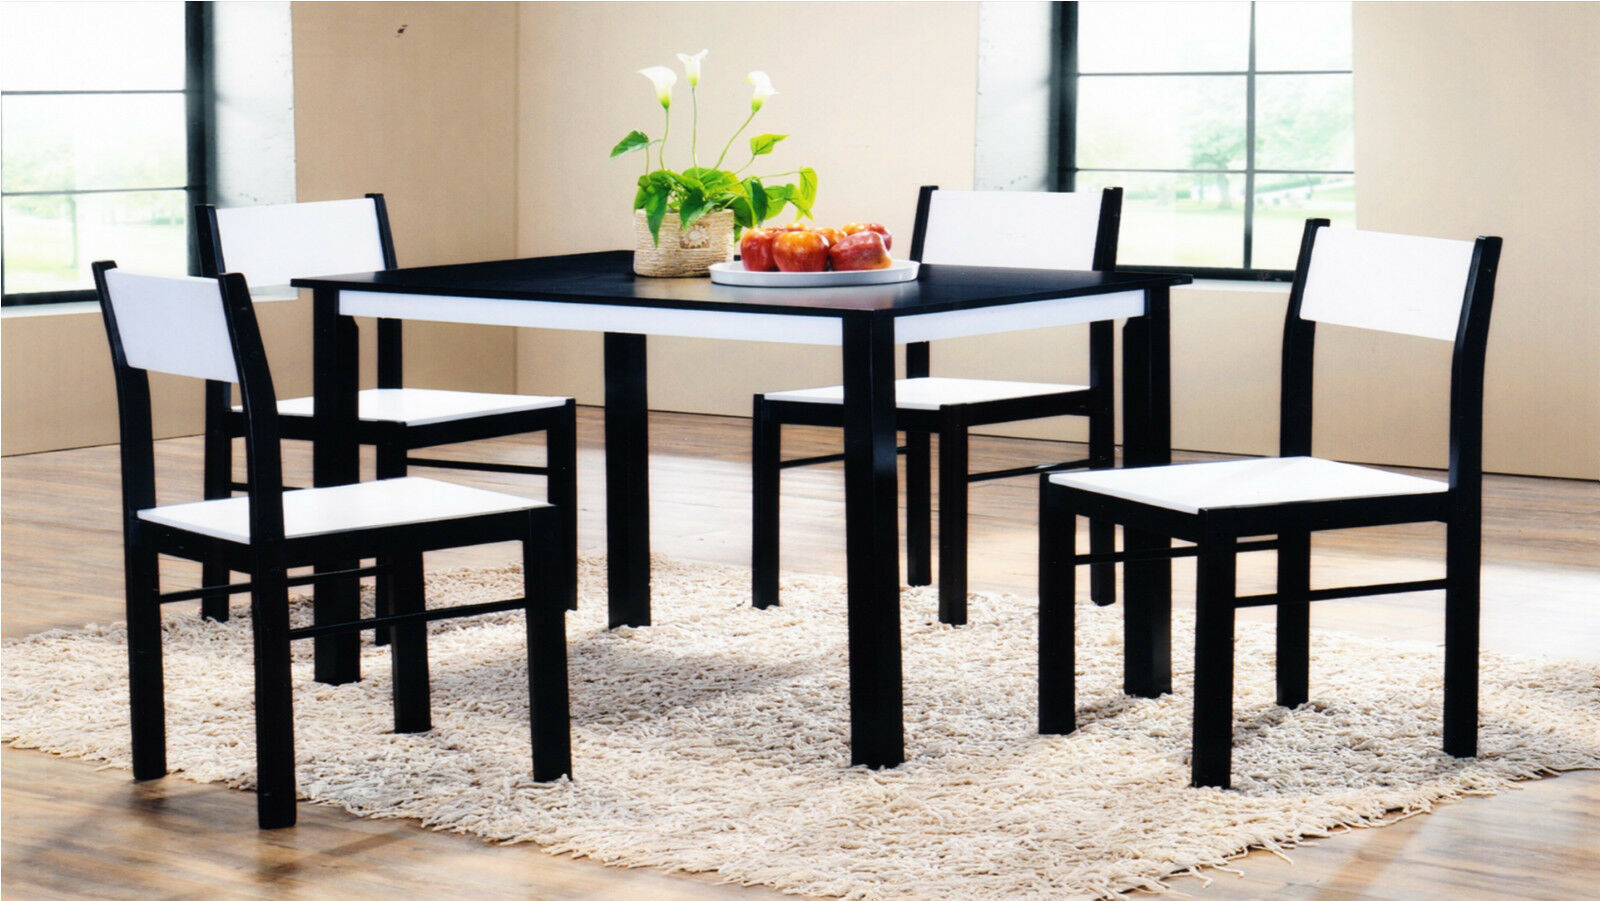 Bnew quality wooden dining table and 4 chairs set kitchen for Quality wood dining tables